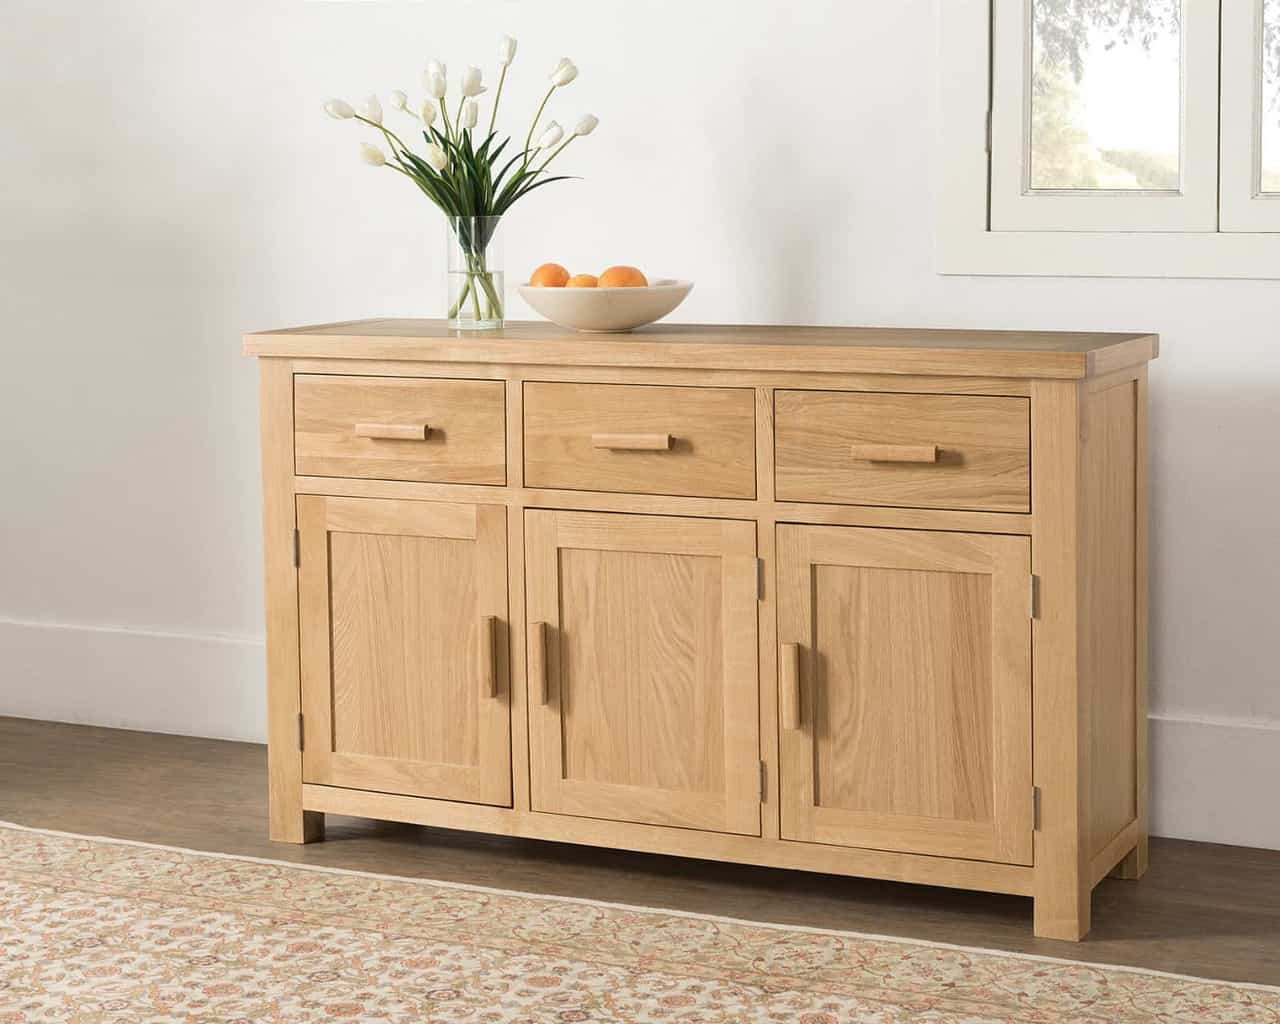 Valencia Solid Wood Chunky Oak Large Sideboard Cupboard Cabinet Msl Furniture